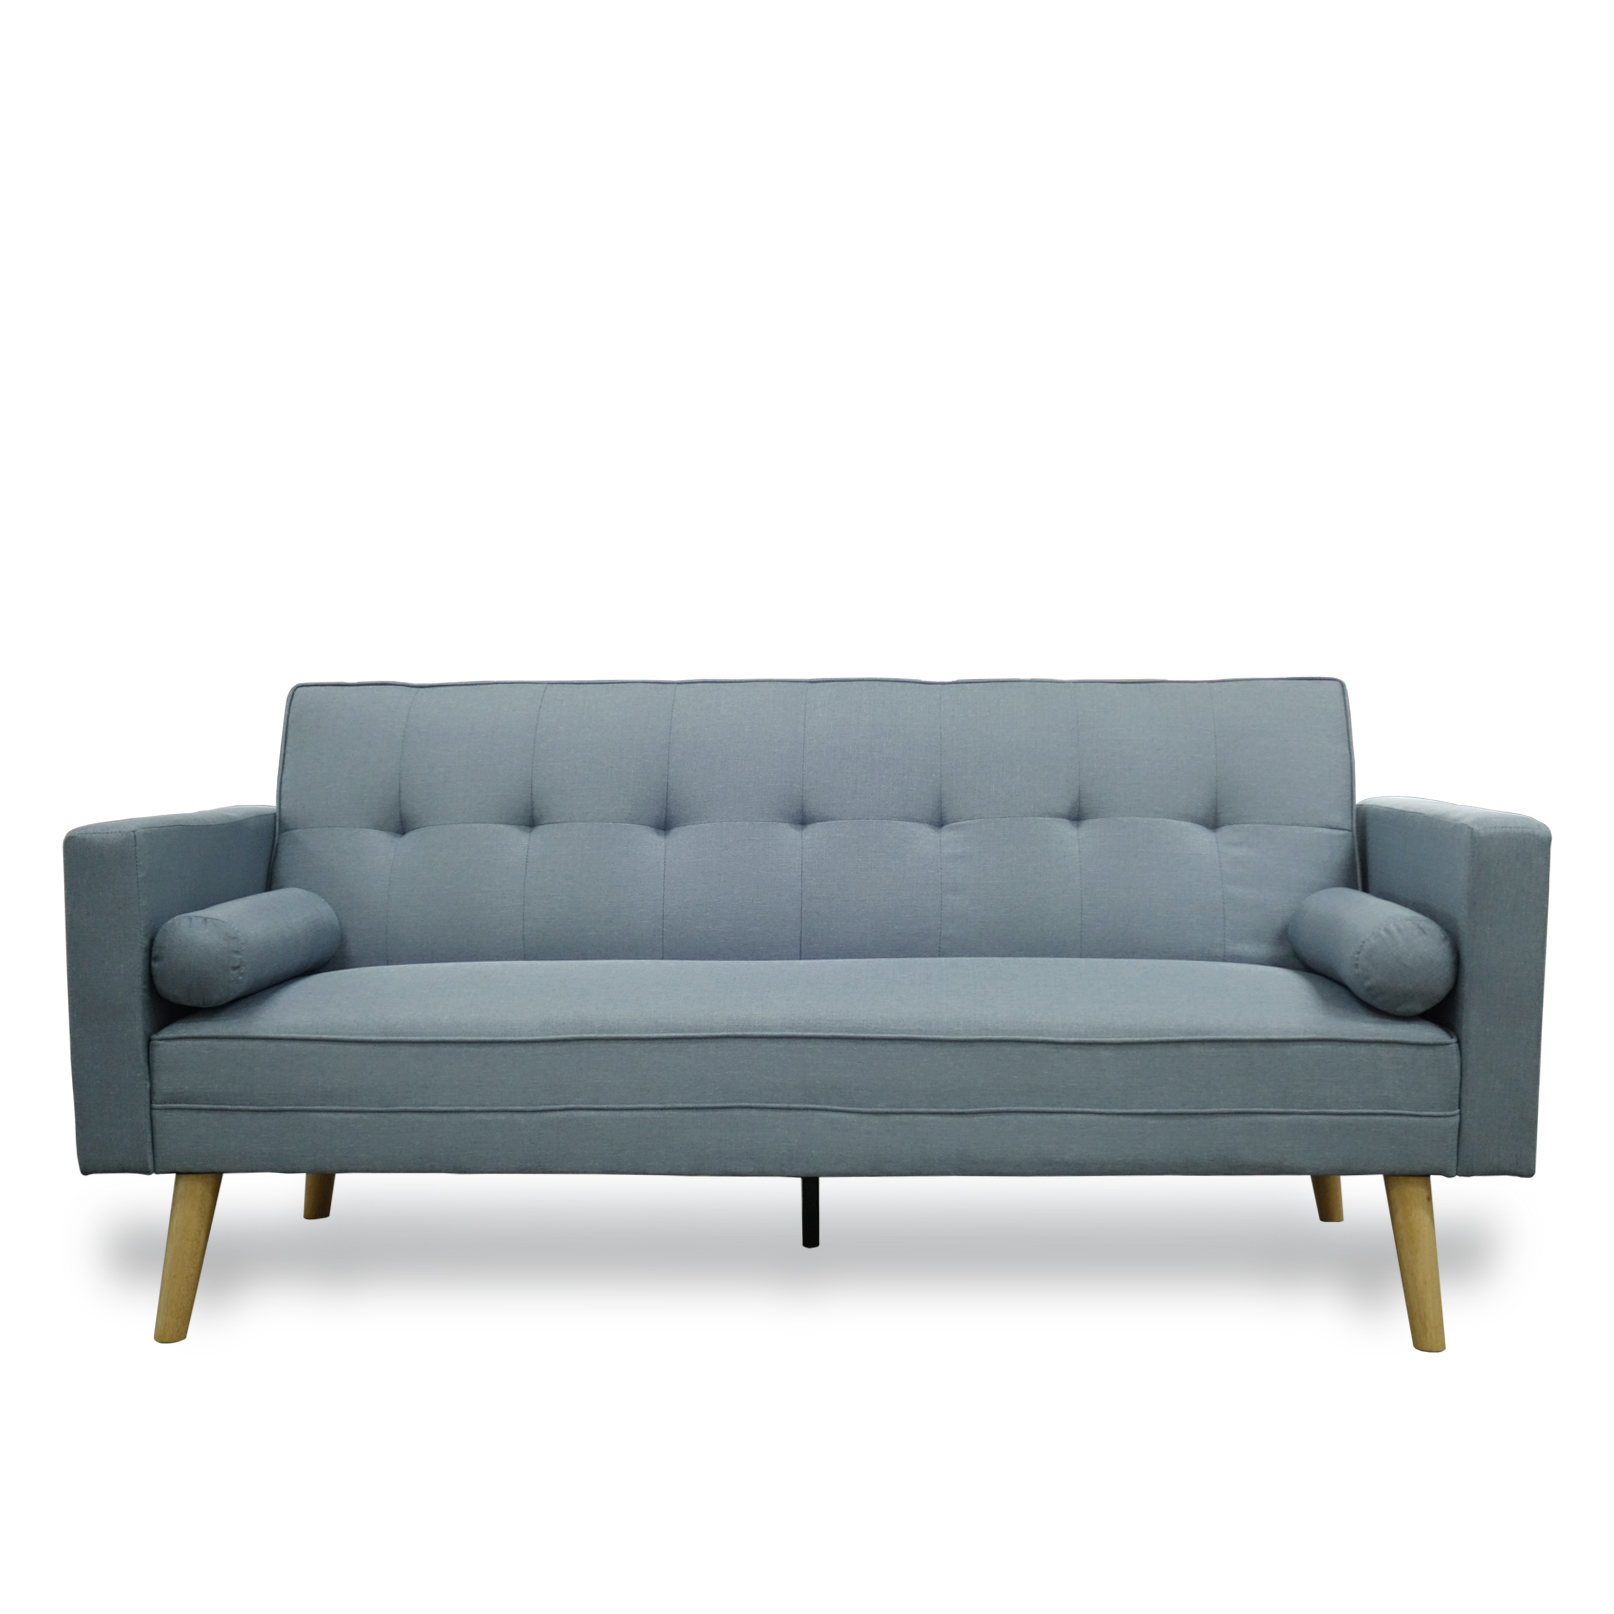 Amy Contemporary Scandinavian Fabric Clack 3 Seater Sofa Bed